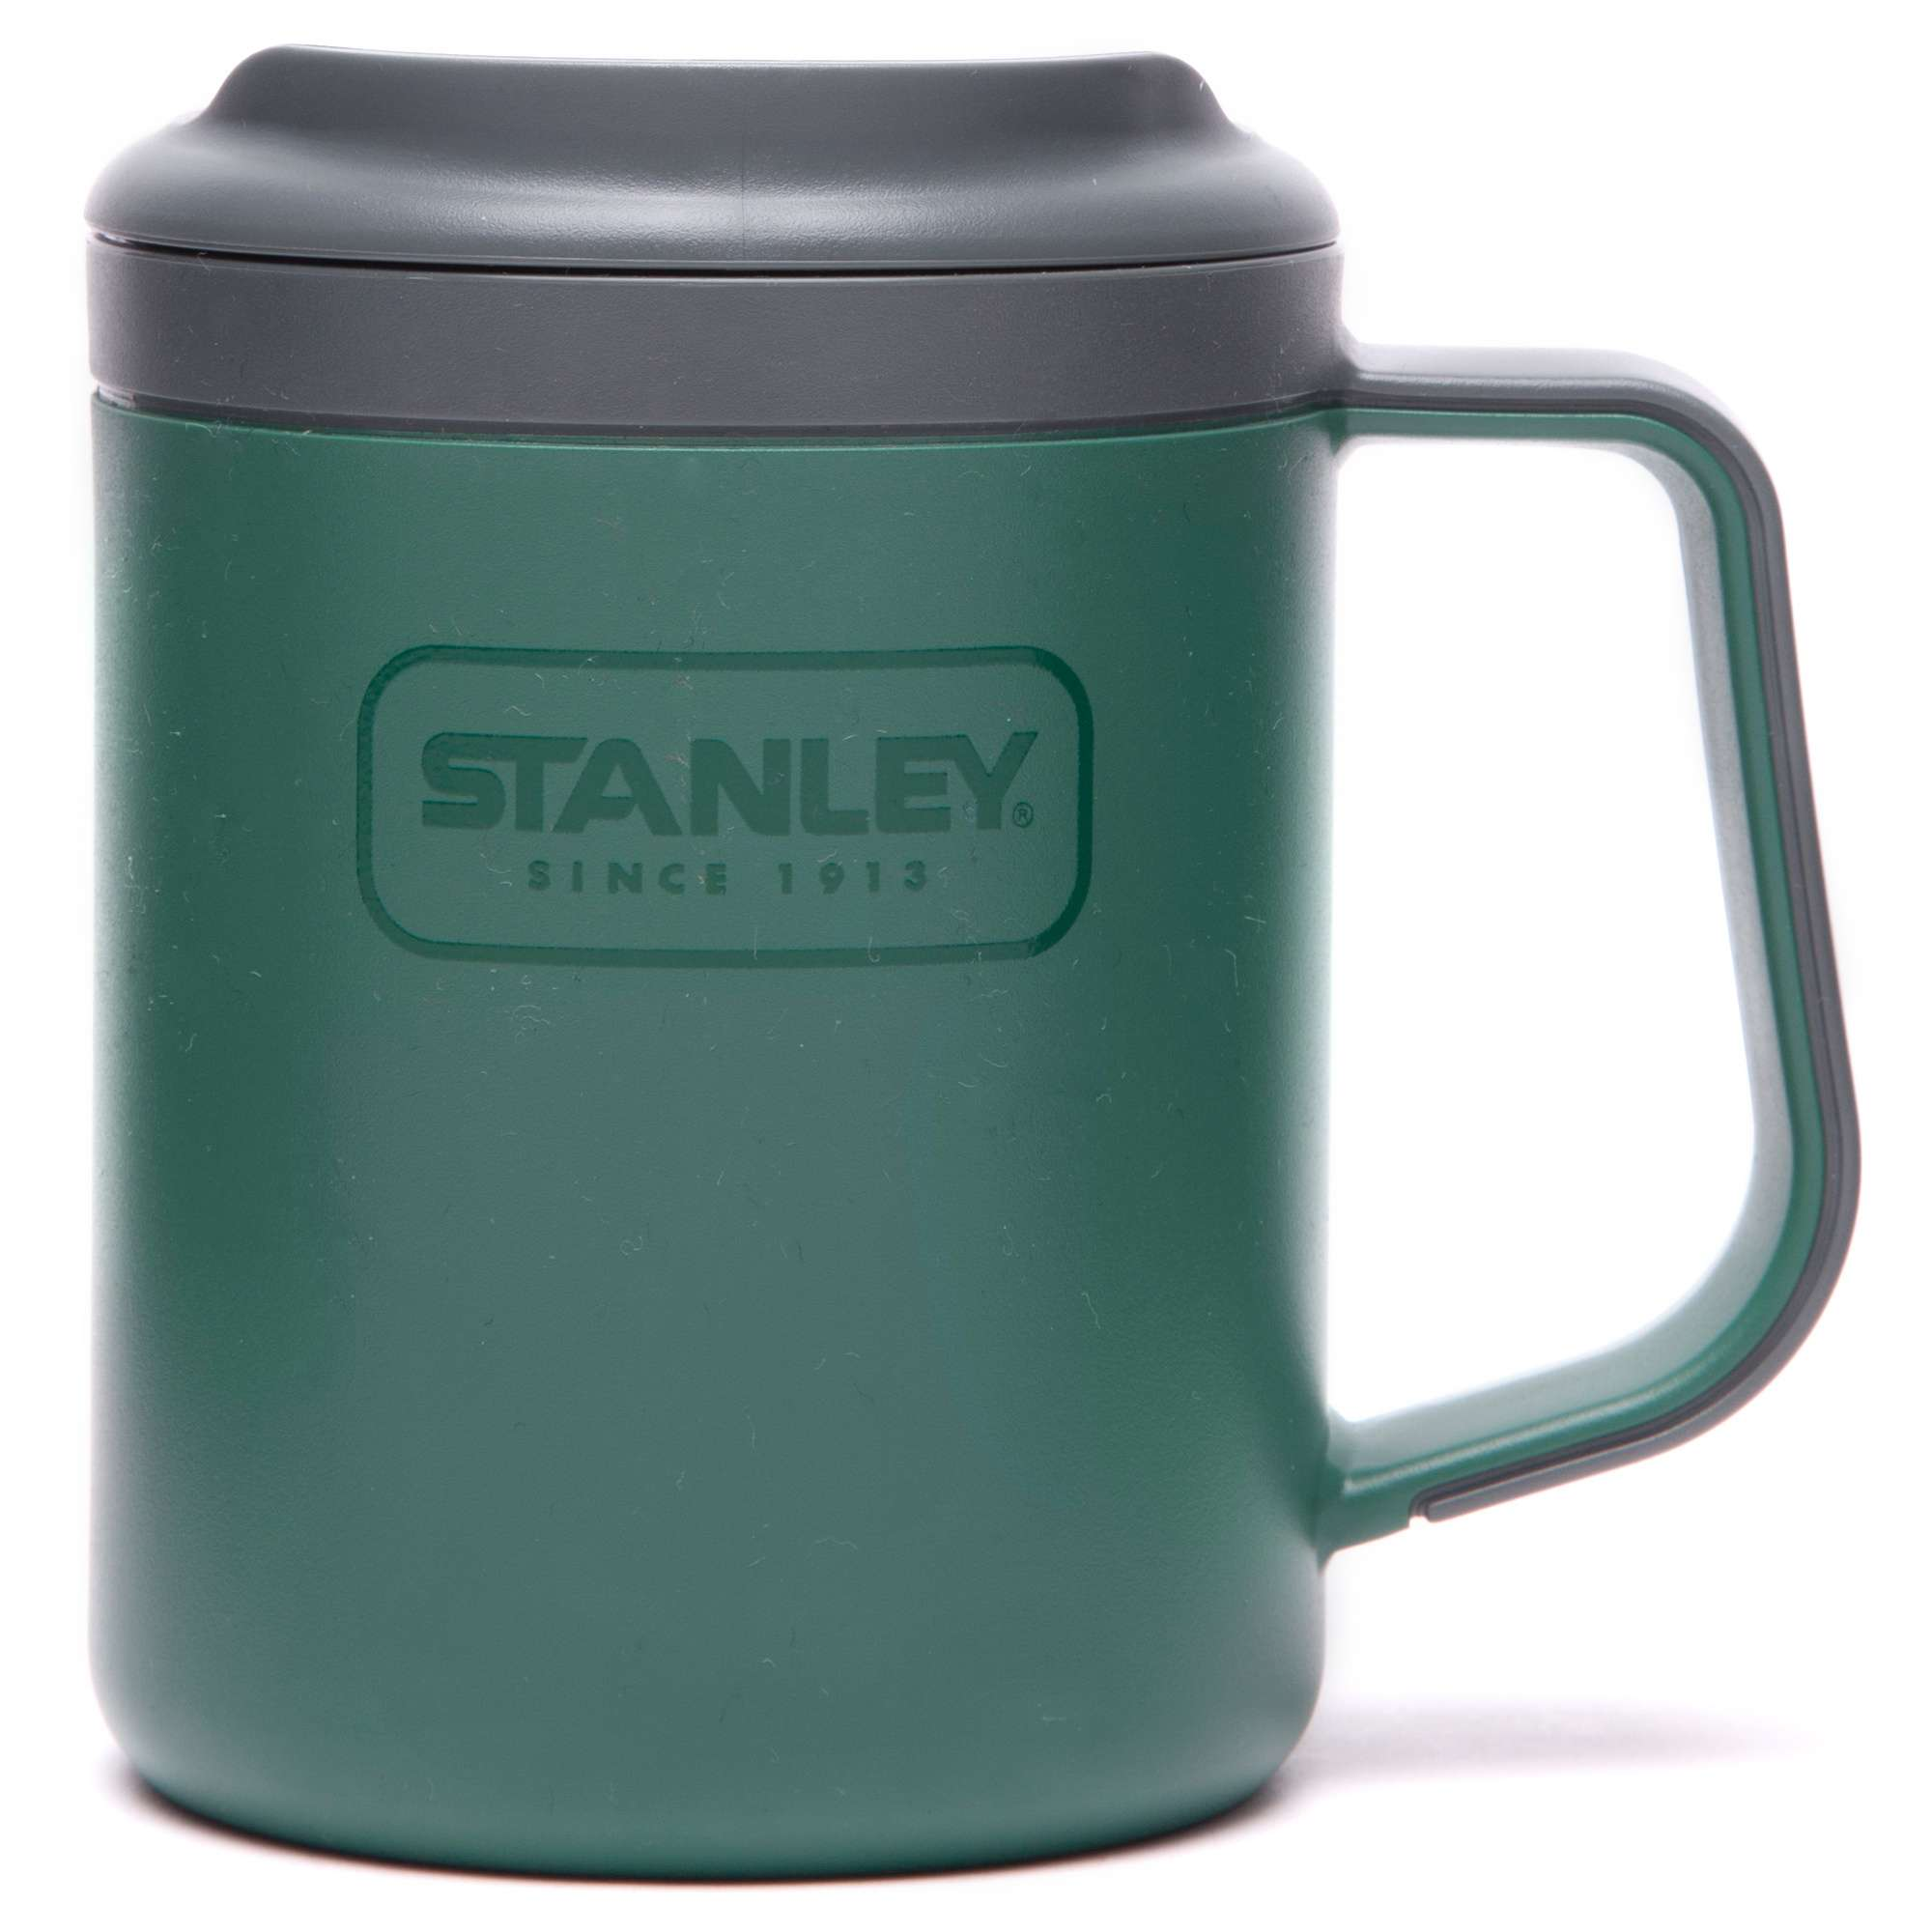 STANLEY eCycle Camp Mug